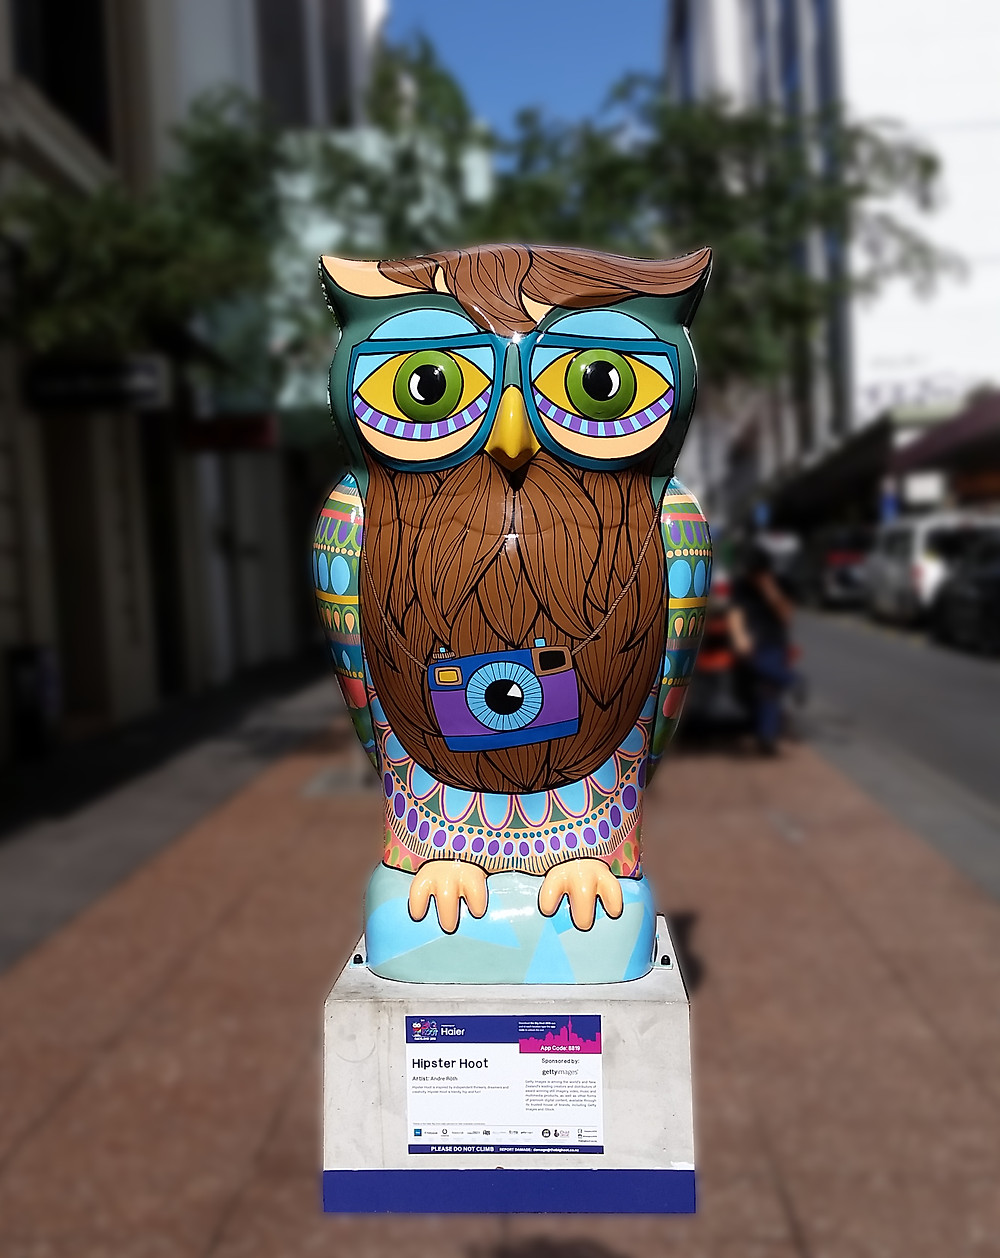 Hipster Hoot by Andre Roth